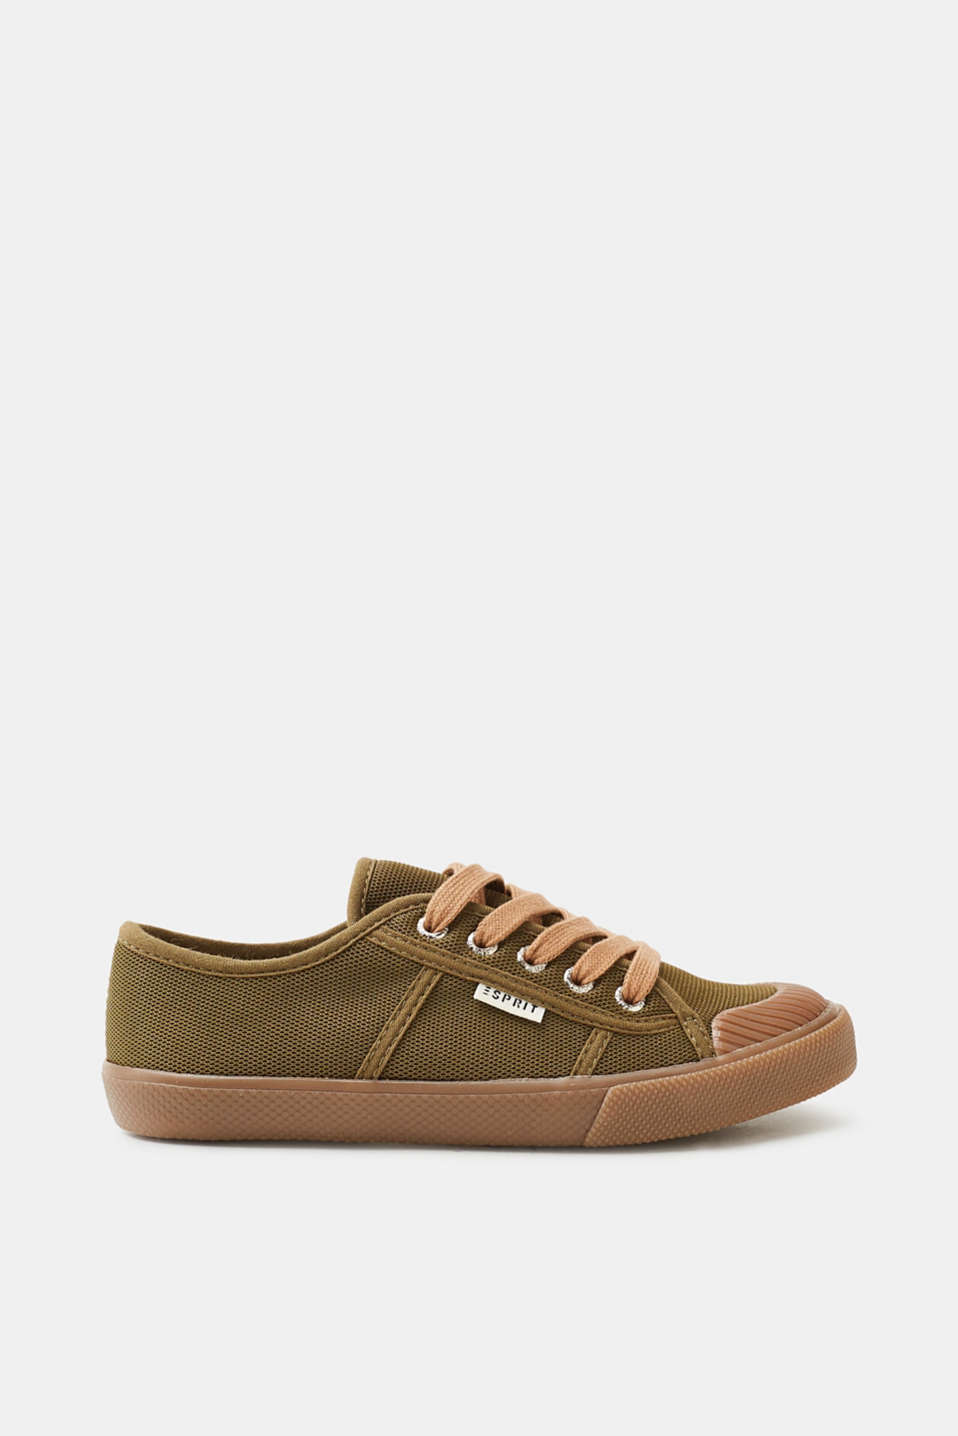 Esprit - Sneakers stringate in materiale high tech